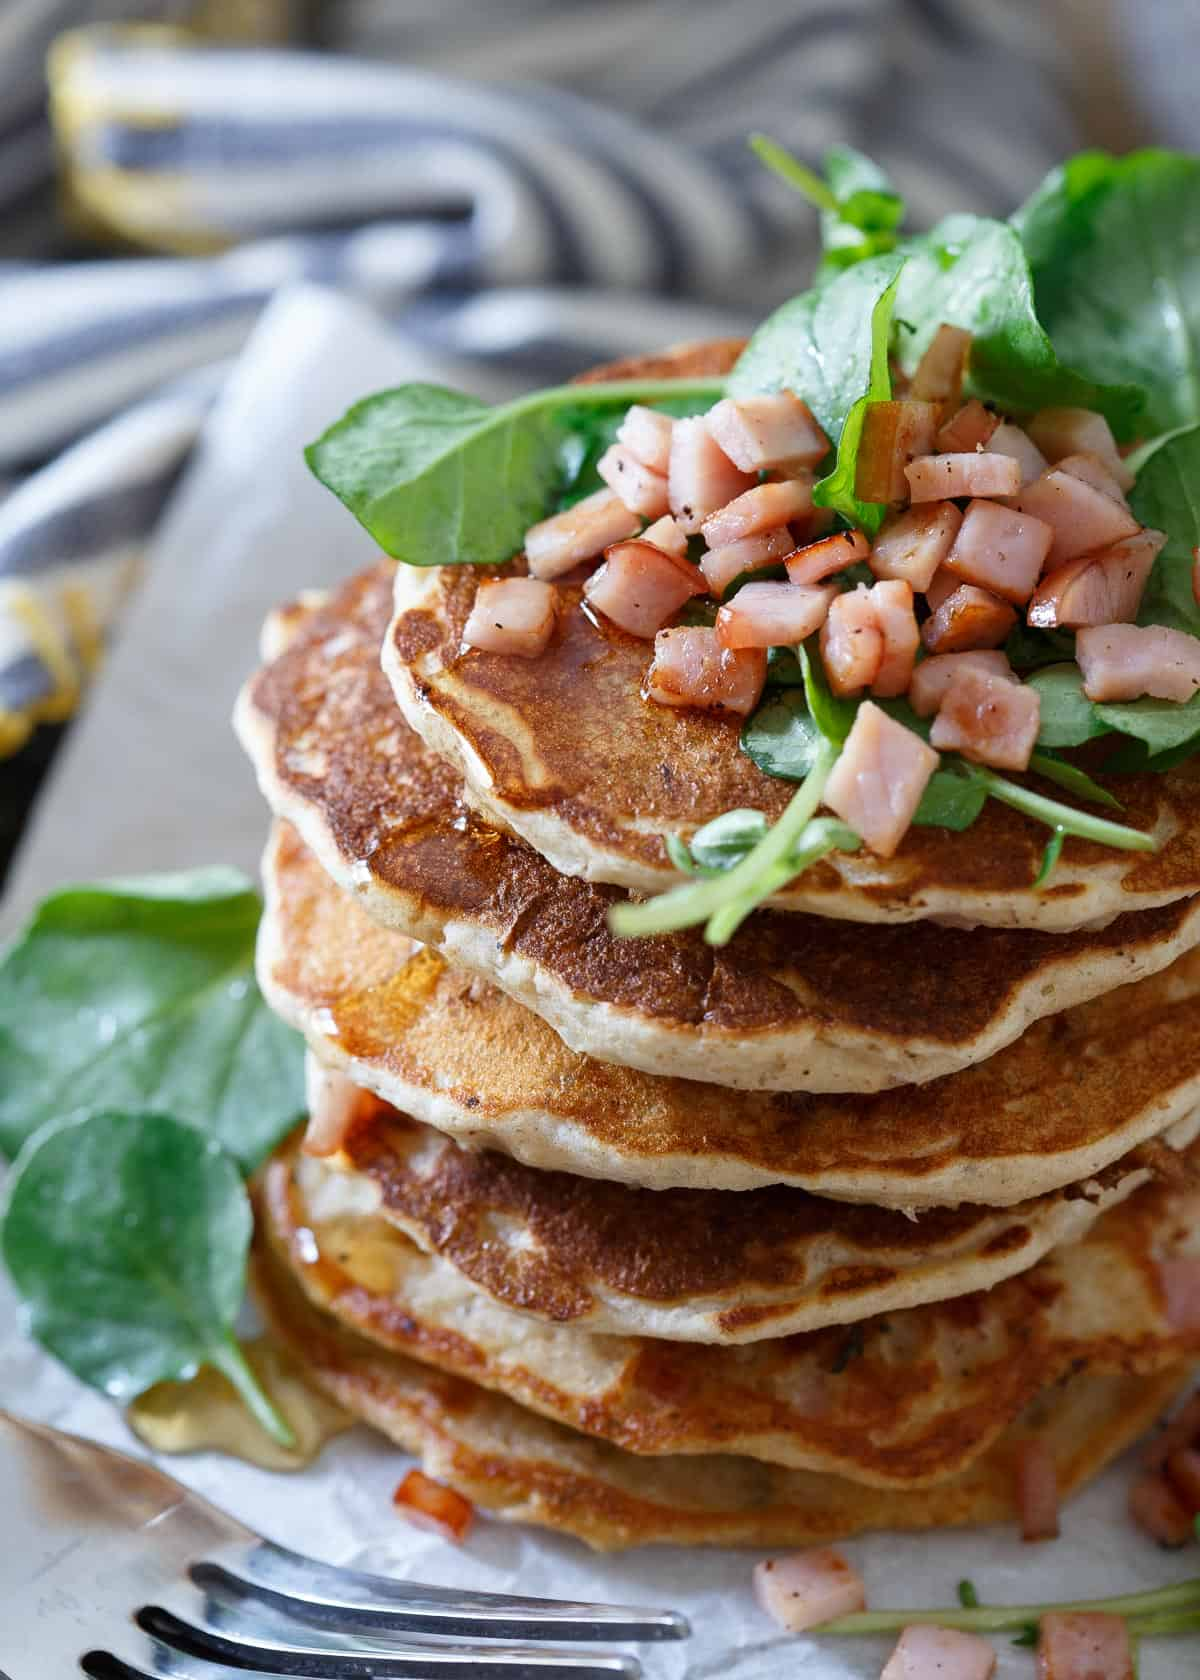 Savory Canadian Bacon Pancakes make the perfect breakfast for dinner meal. Stuffed full of savory ingredients and topped with a simple refreshing watercress salad.